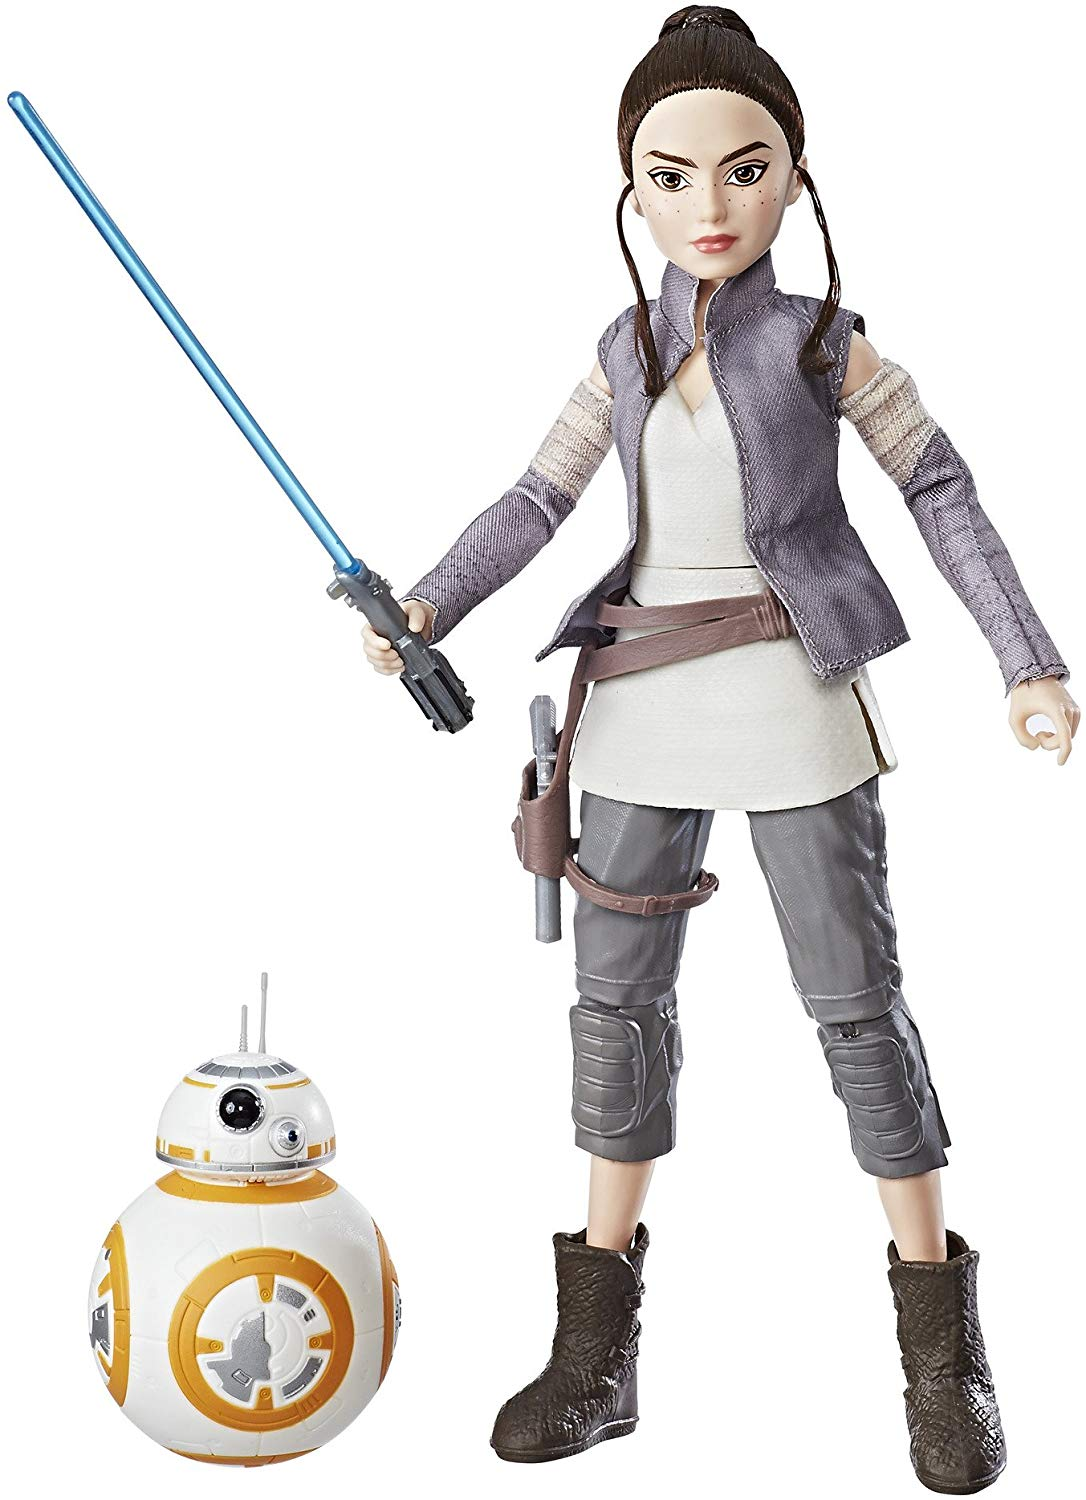 Star Wars Forces of Destiny Rey of Jakku and BB-8 Oficial Licenciado